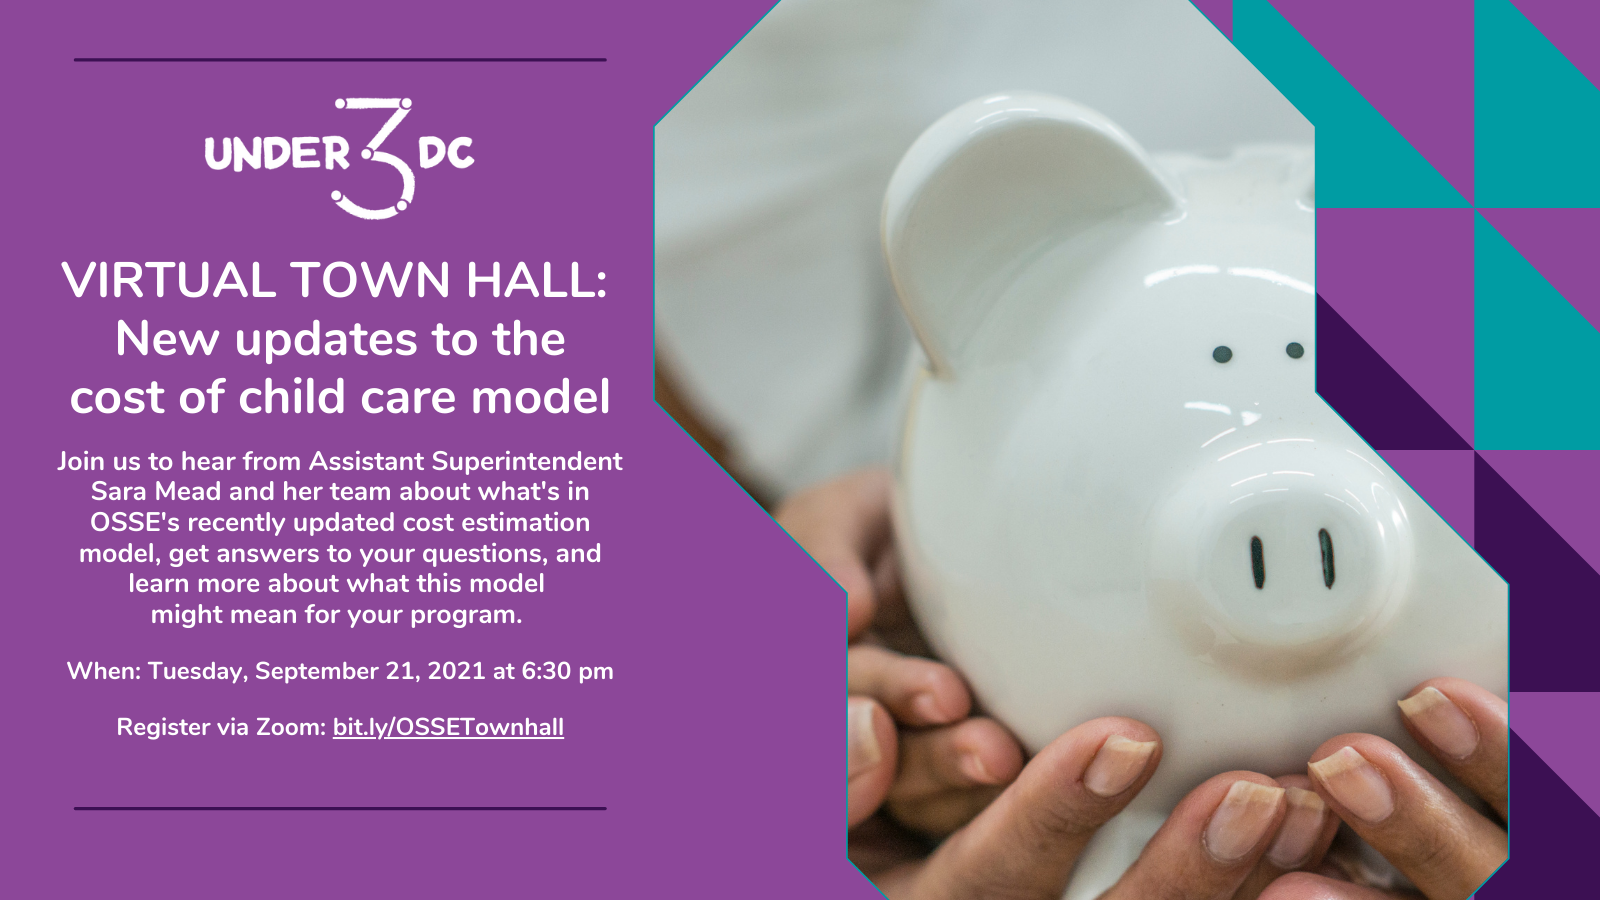 https://under3dc.org/wp-content/uploads/2021/09/OSSE-Cost-of-Child-Care-Town-Hall-english.png